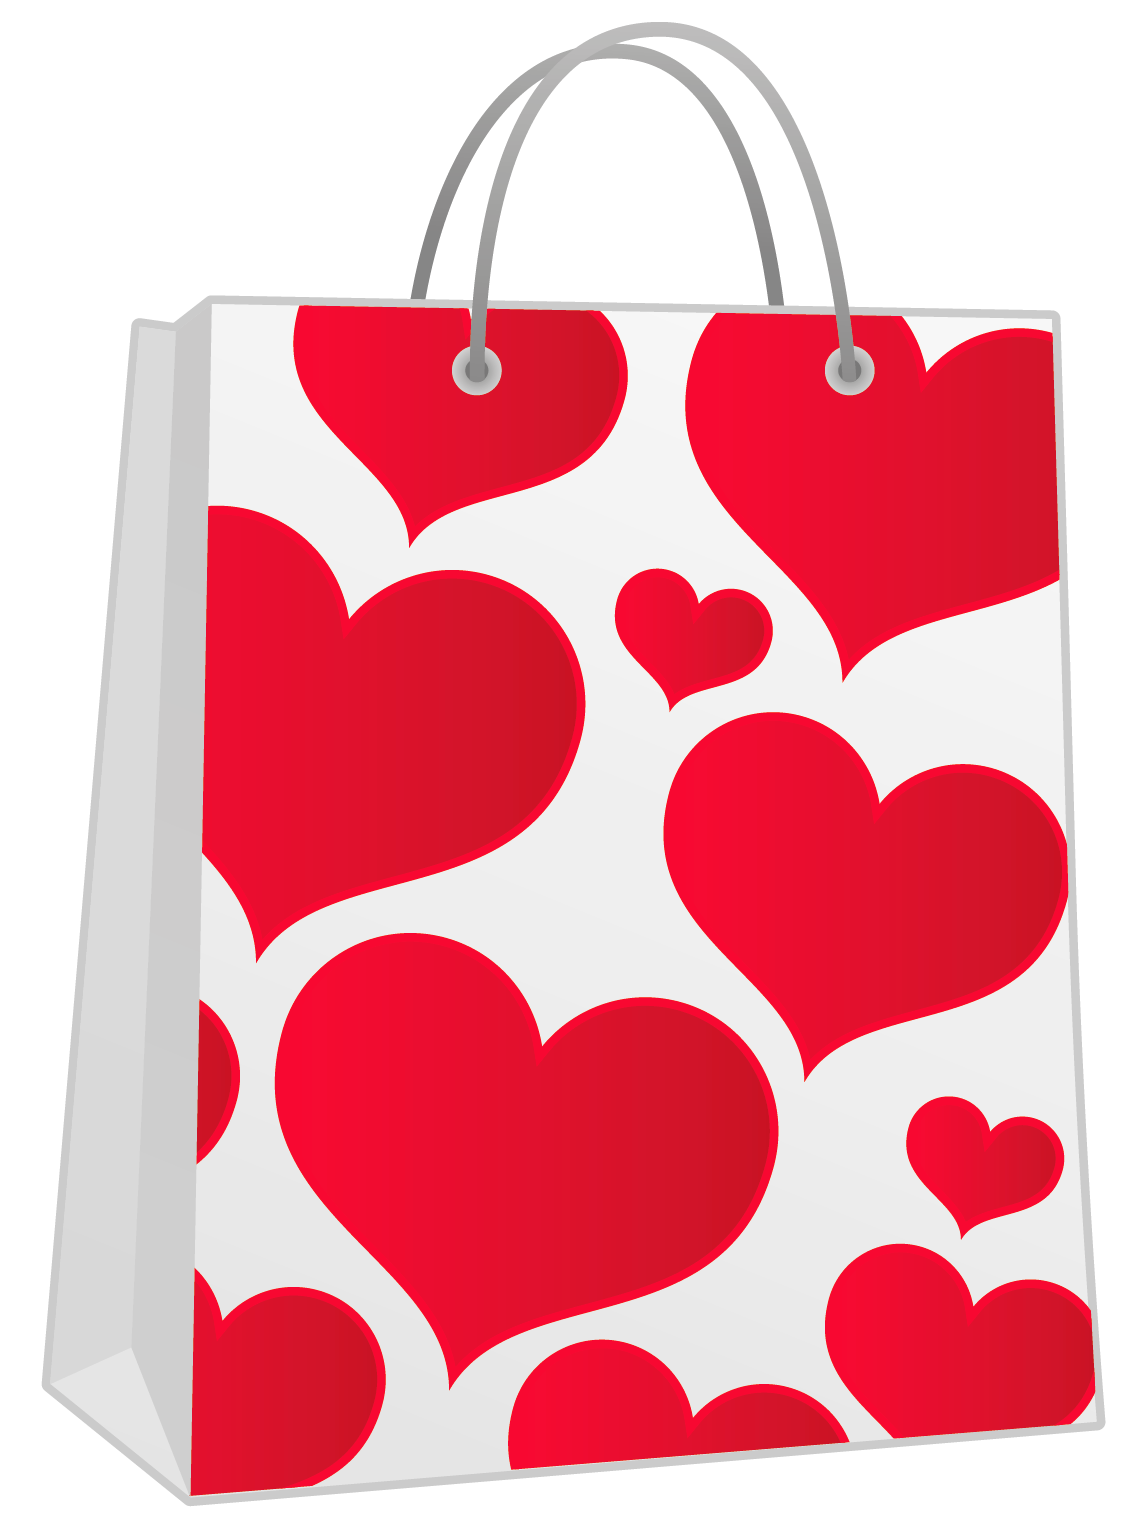 Christmas shopping bag clipart clip art download Valentine Red Gift Bag with Hearts PNG Clipart | Gallery ... clip art download